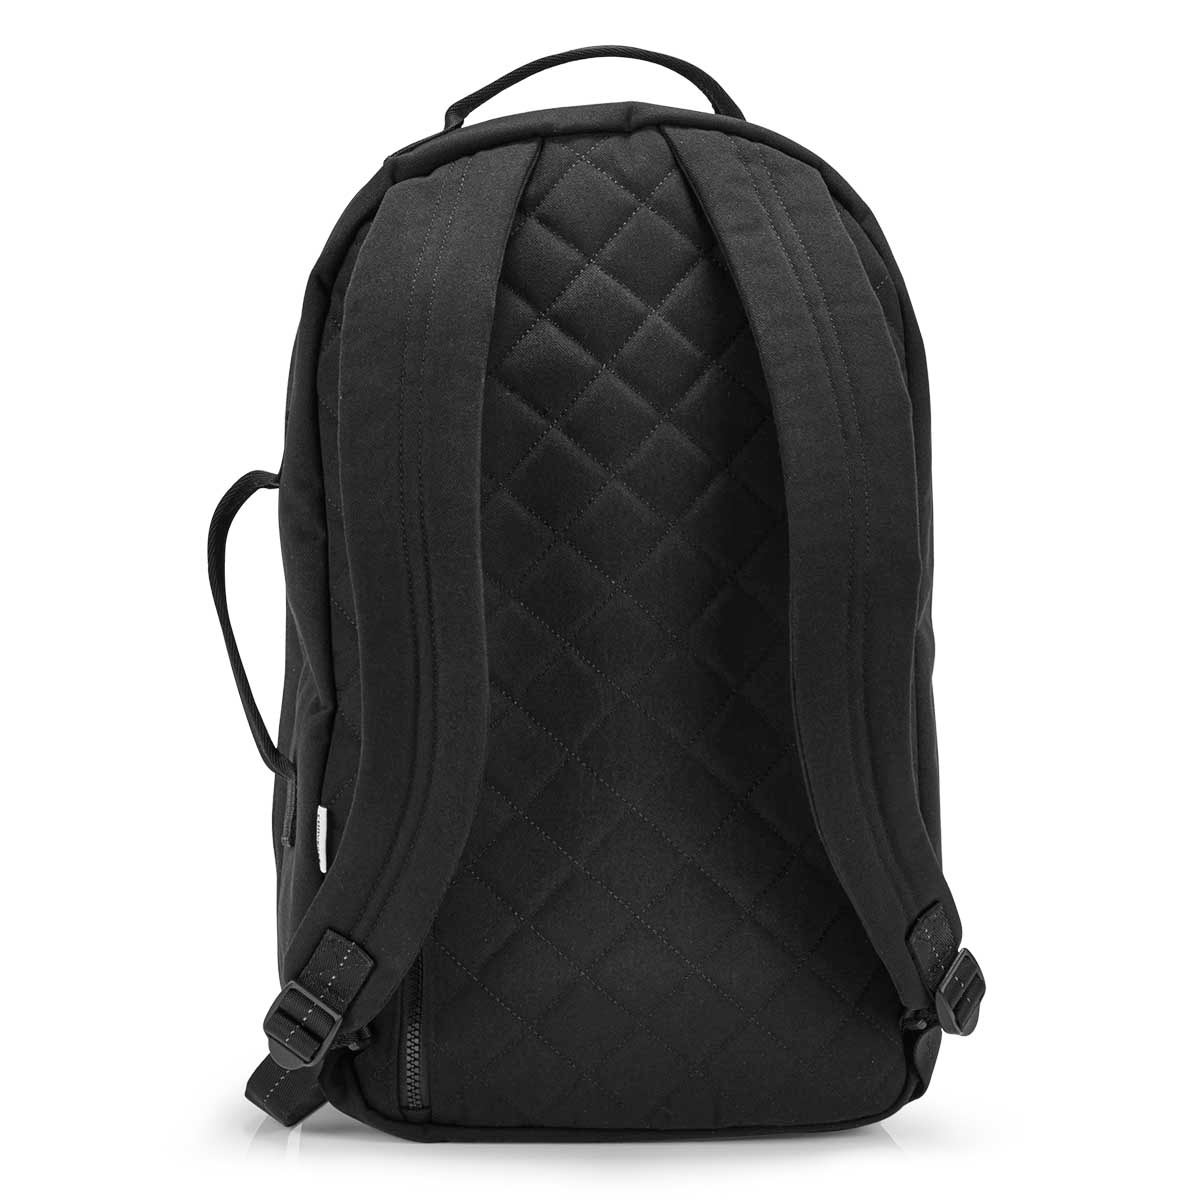 Unisex Essentials black canvas backpack